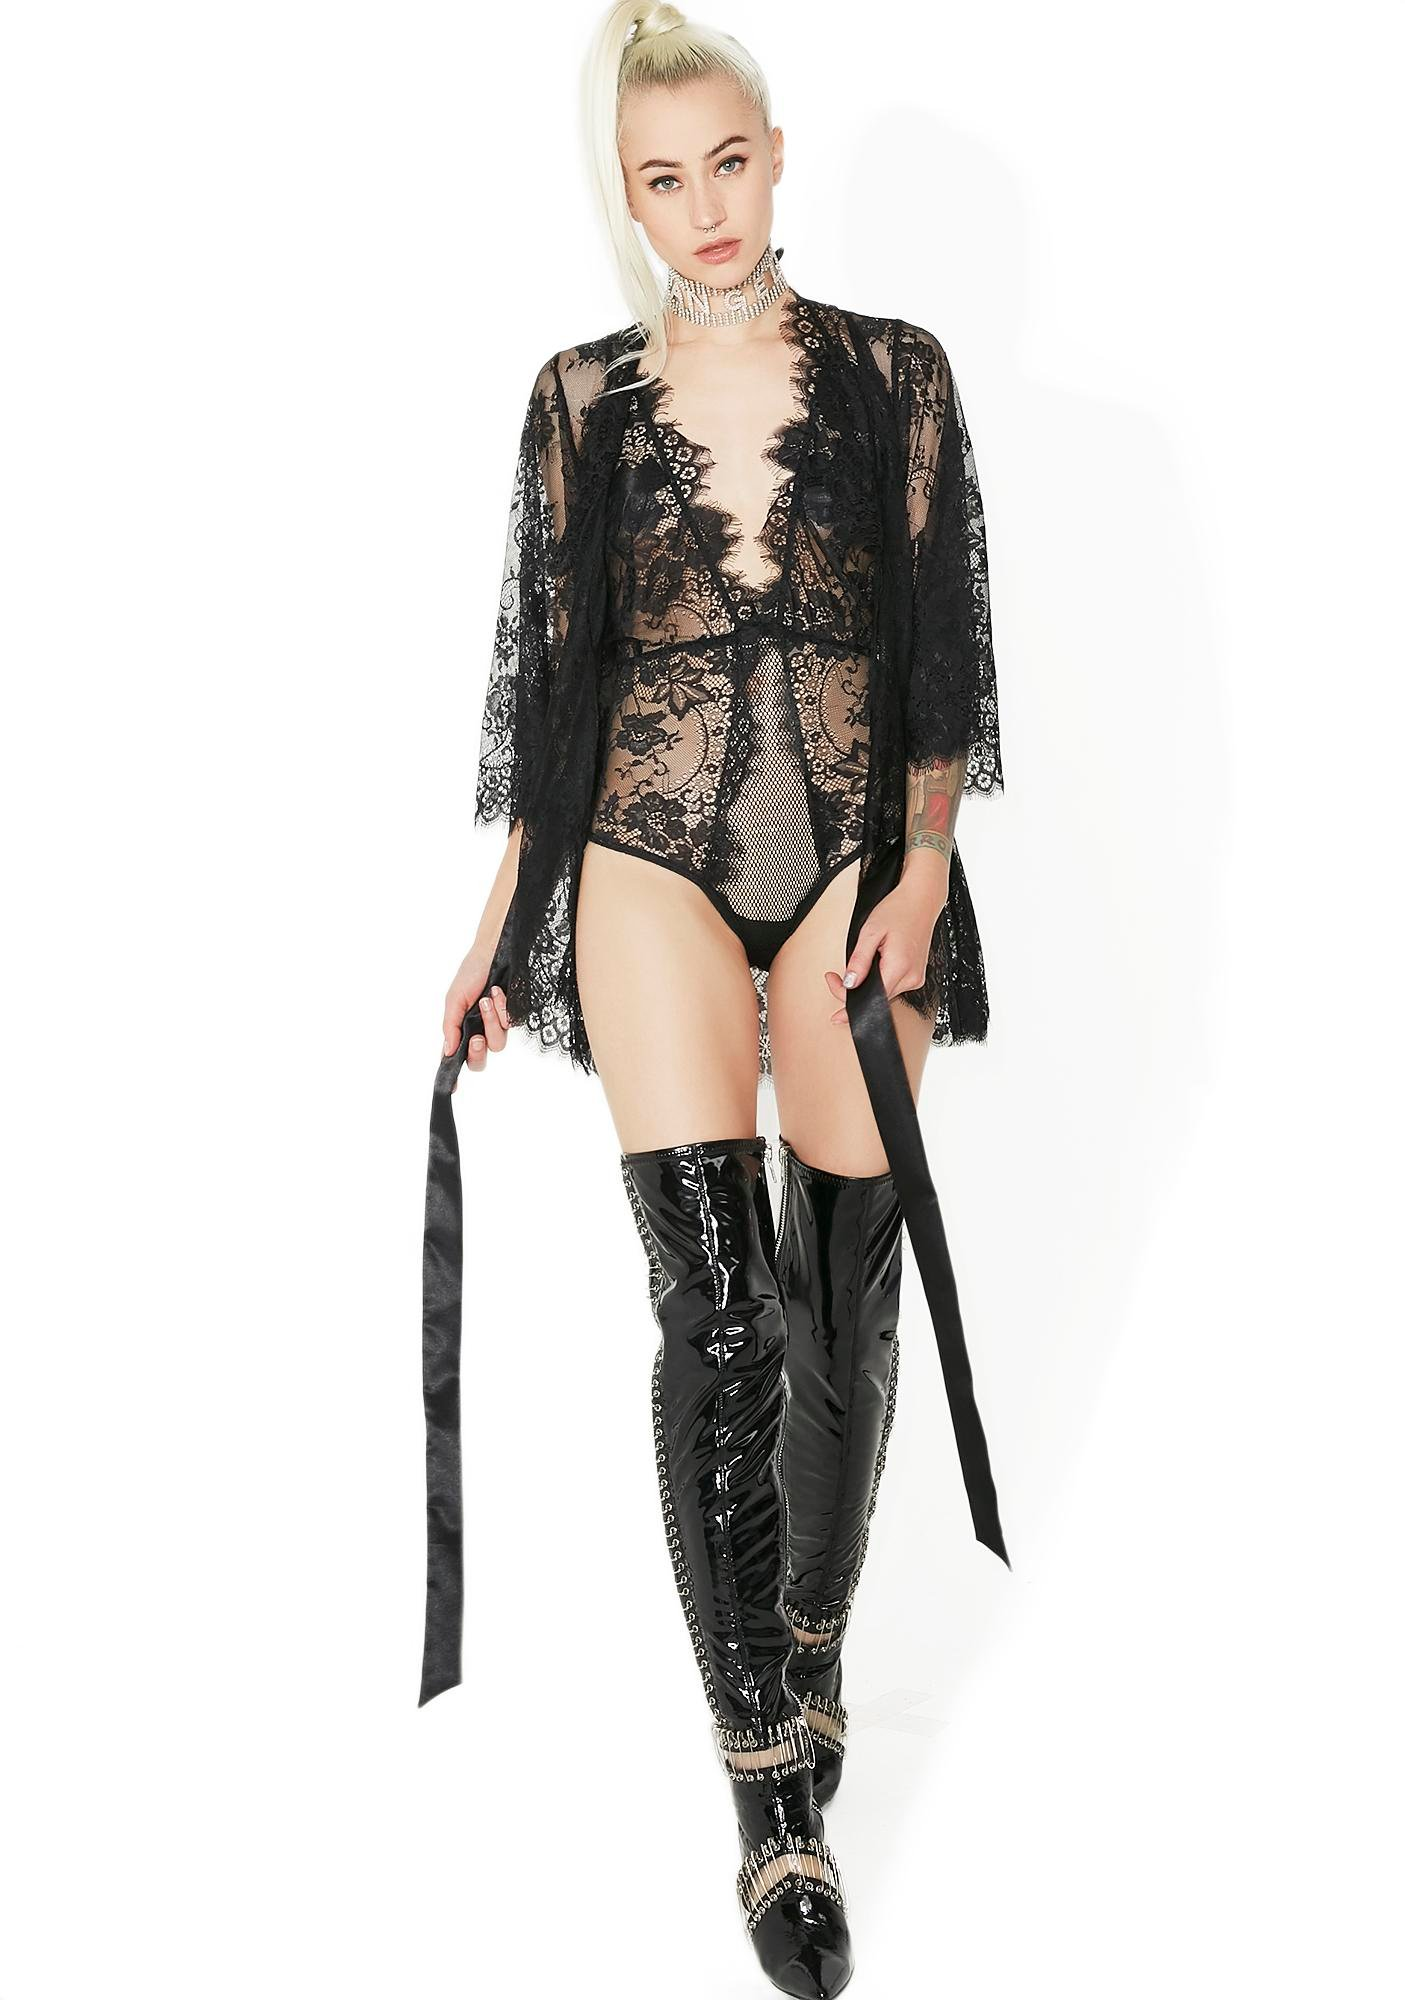 Wicked Nocturne Lace Robe